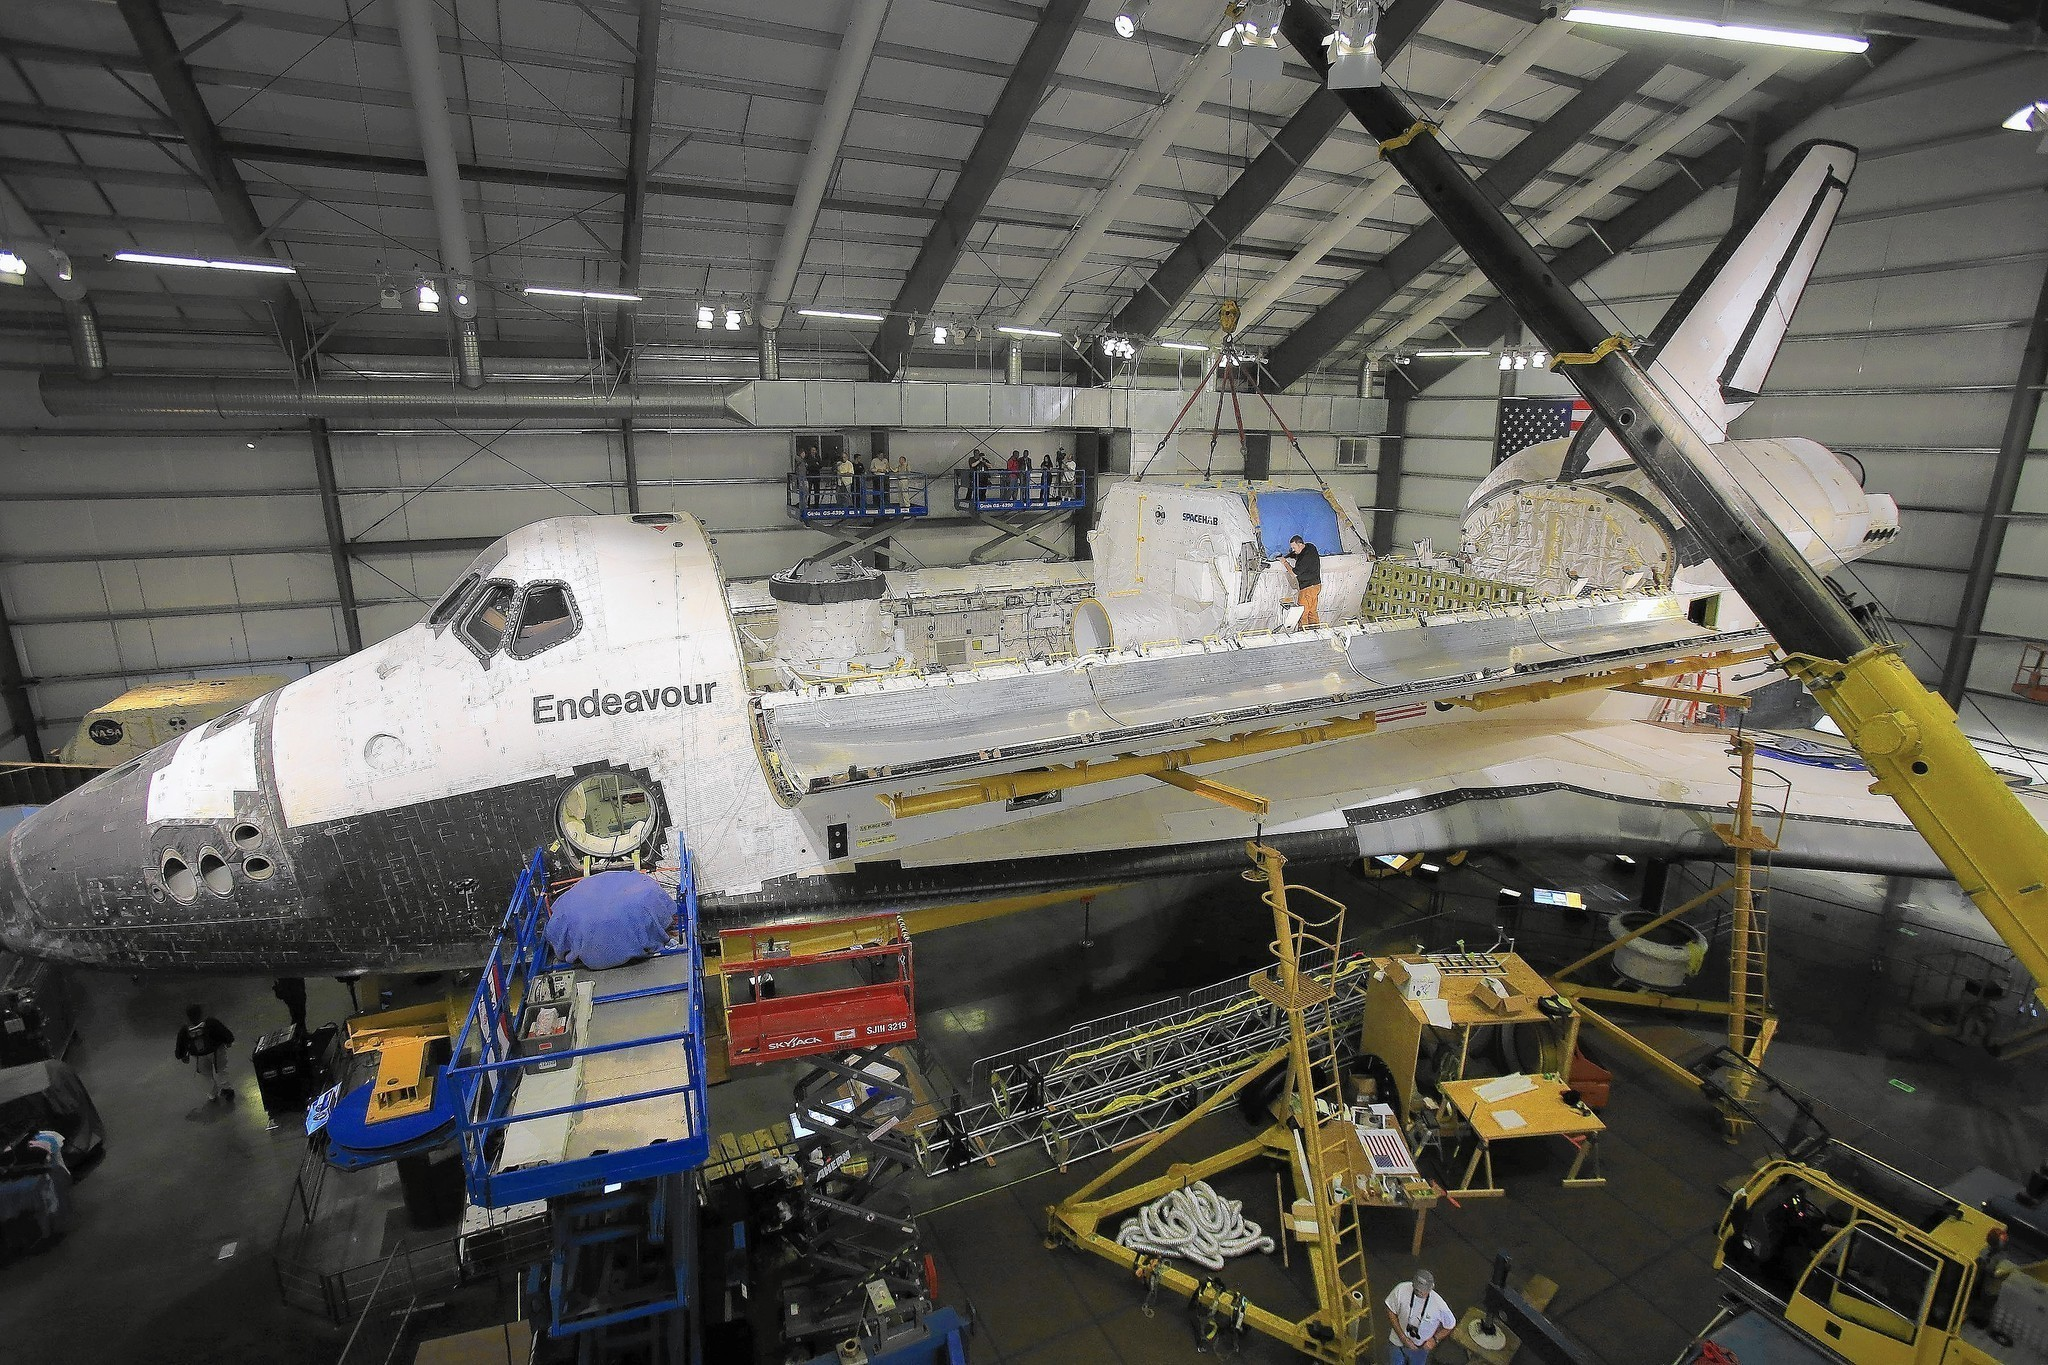 2048x1365 Images of Space Shuttle Endeavour |